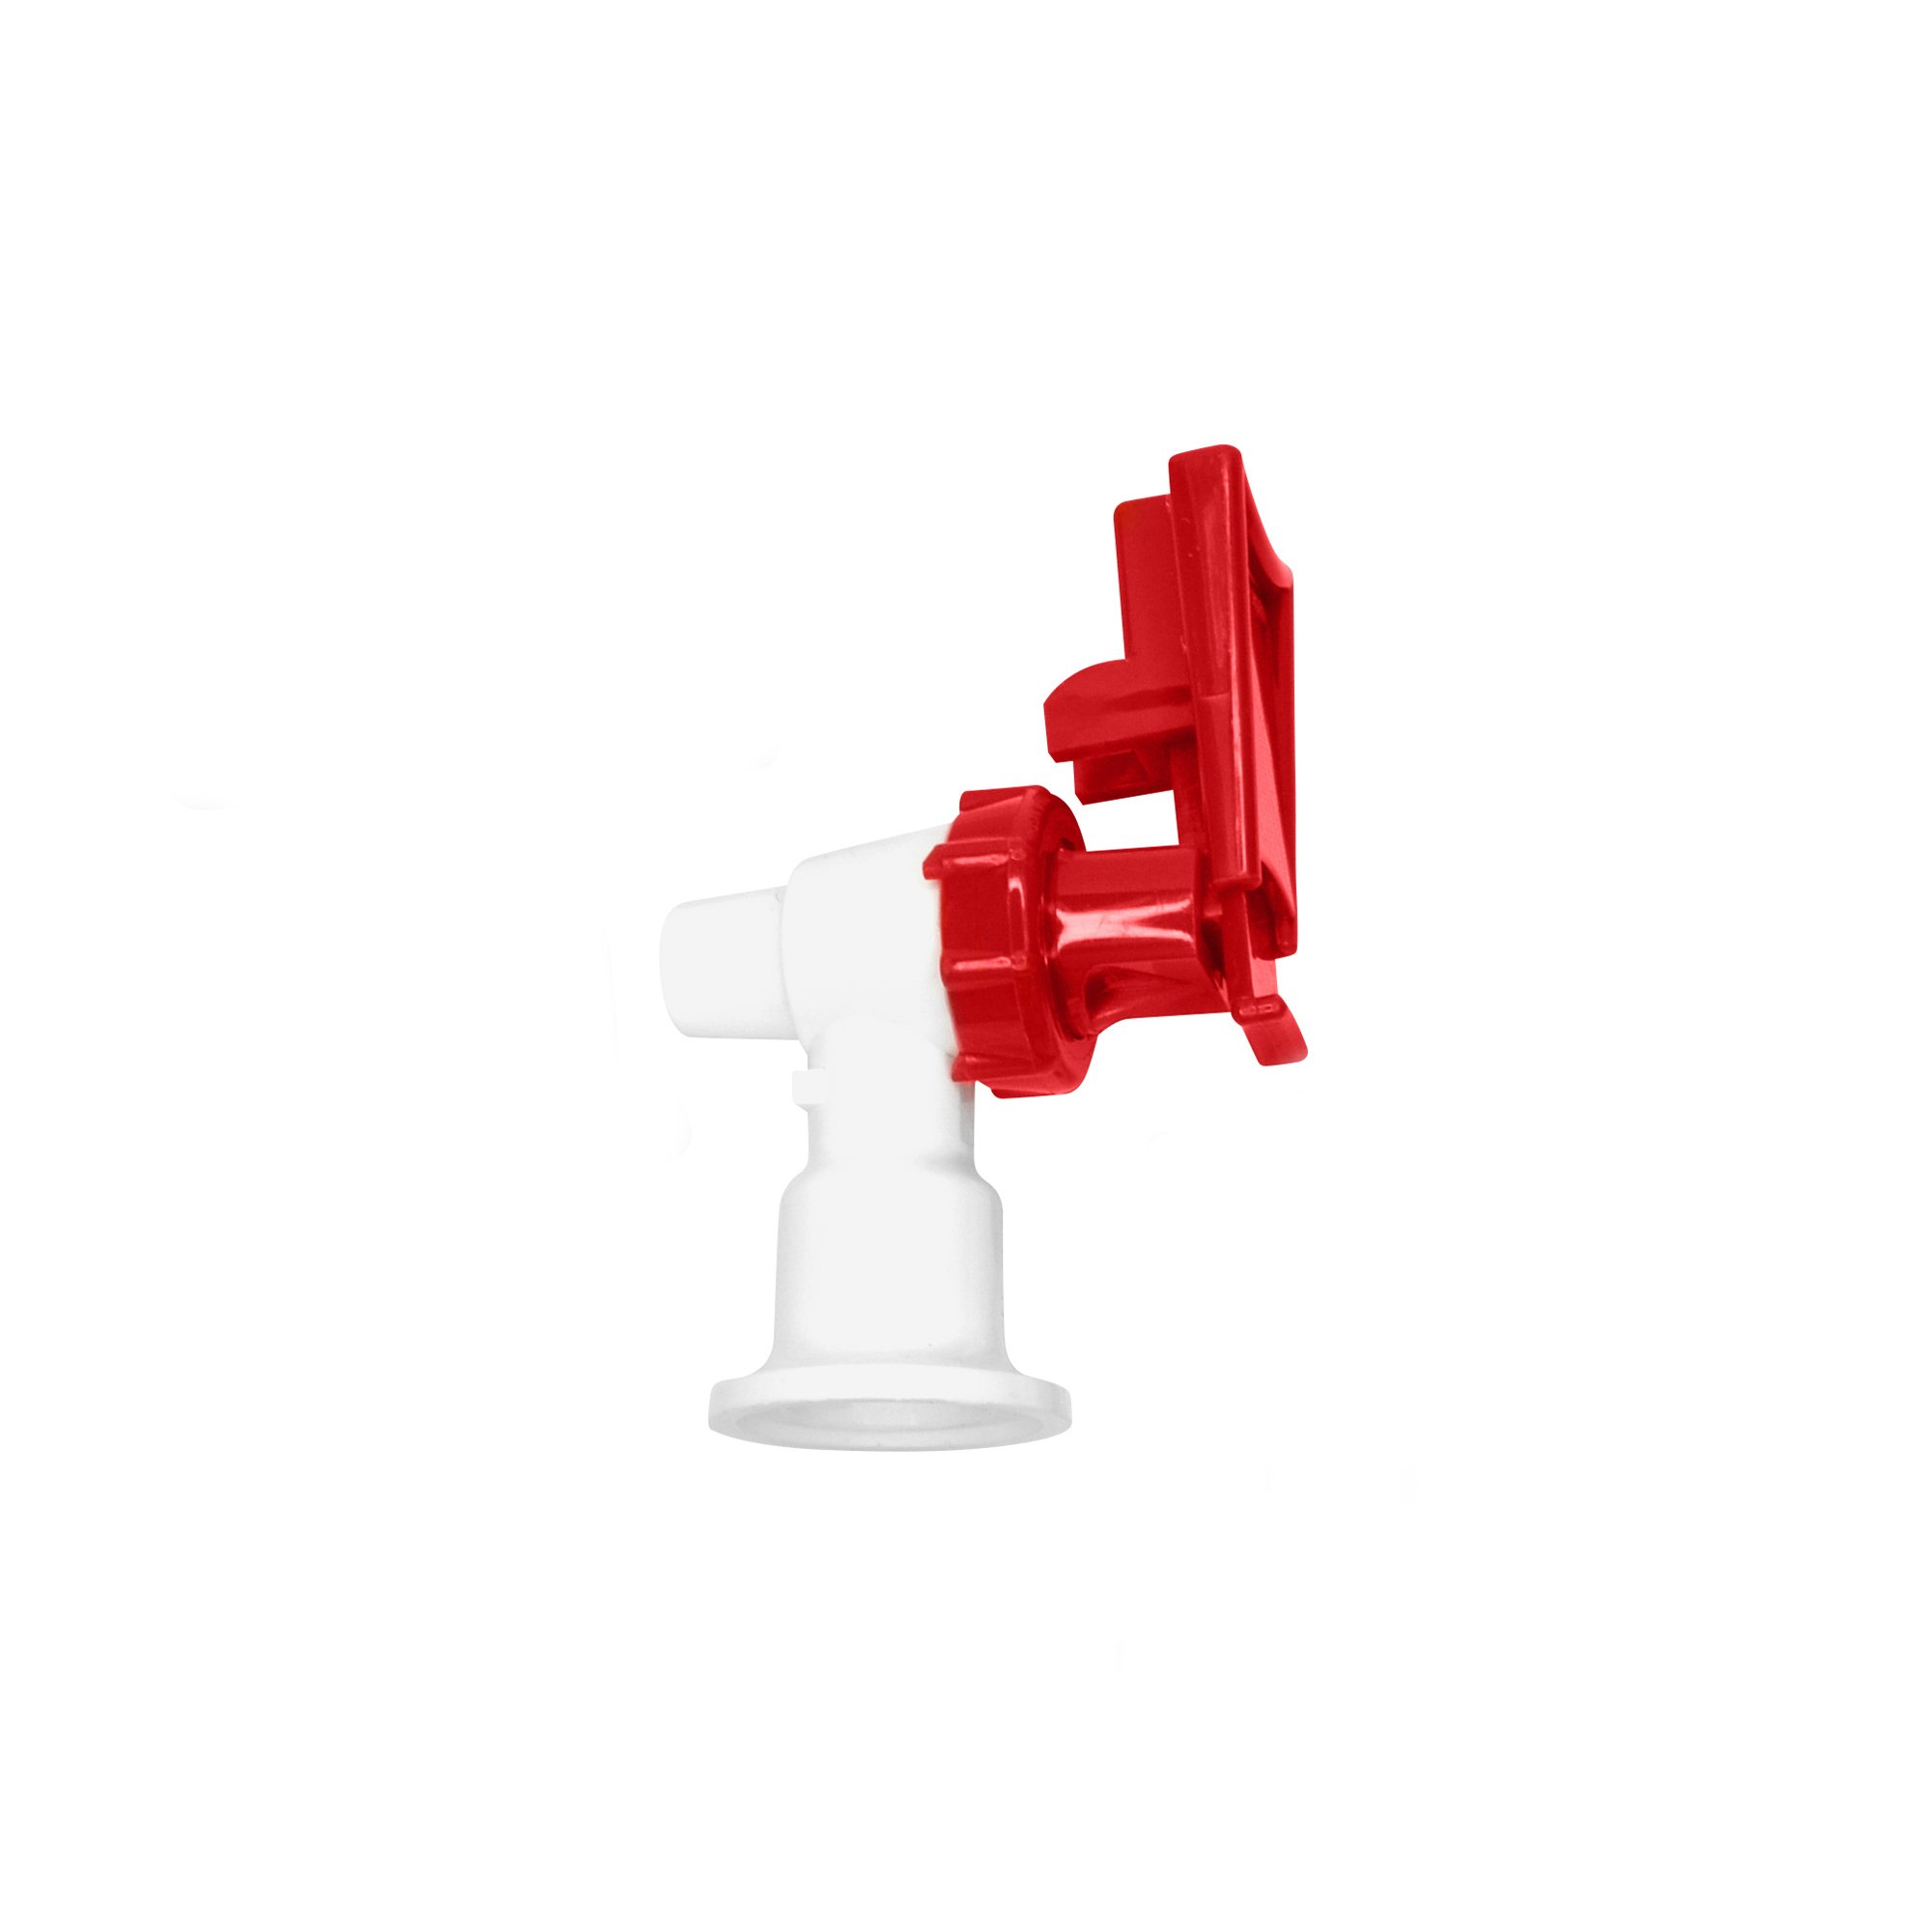 Tomlinson 1009470 White Cooler Replacement Faucet - Red Touch Guard (Pack of 2) by Tomlinson